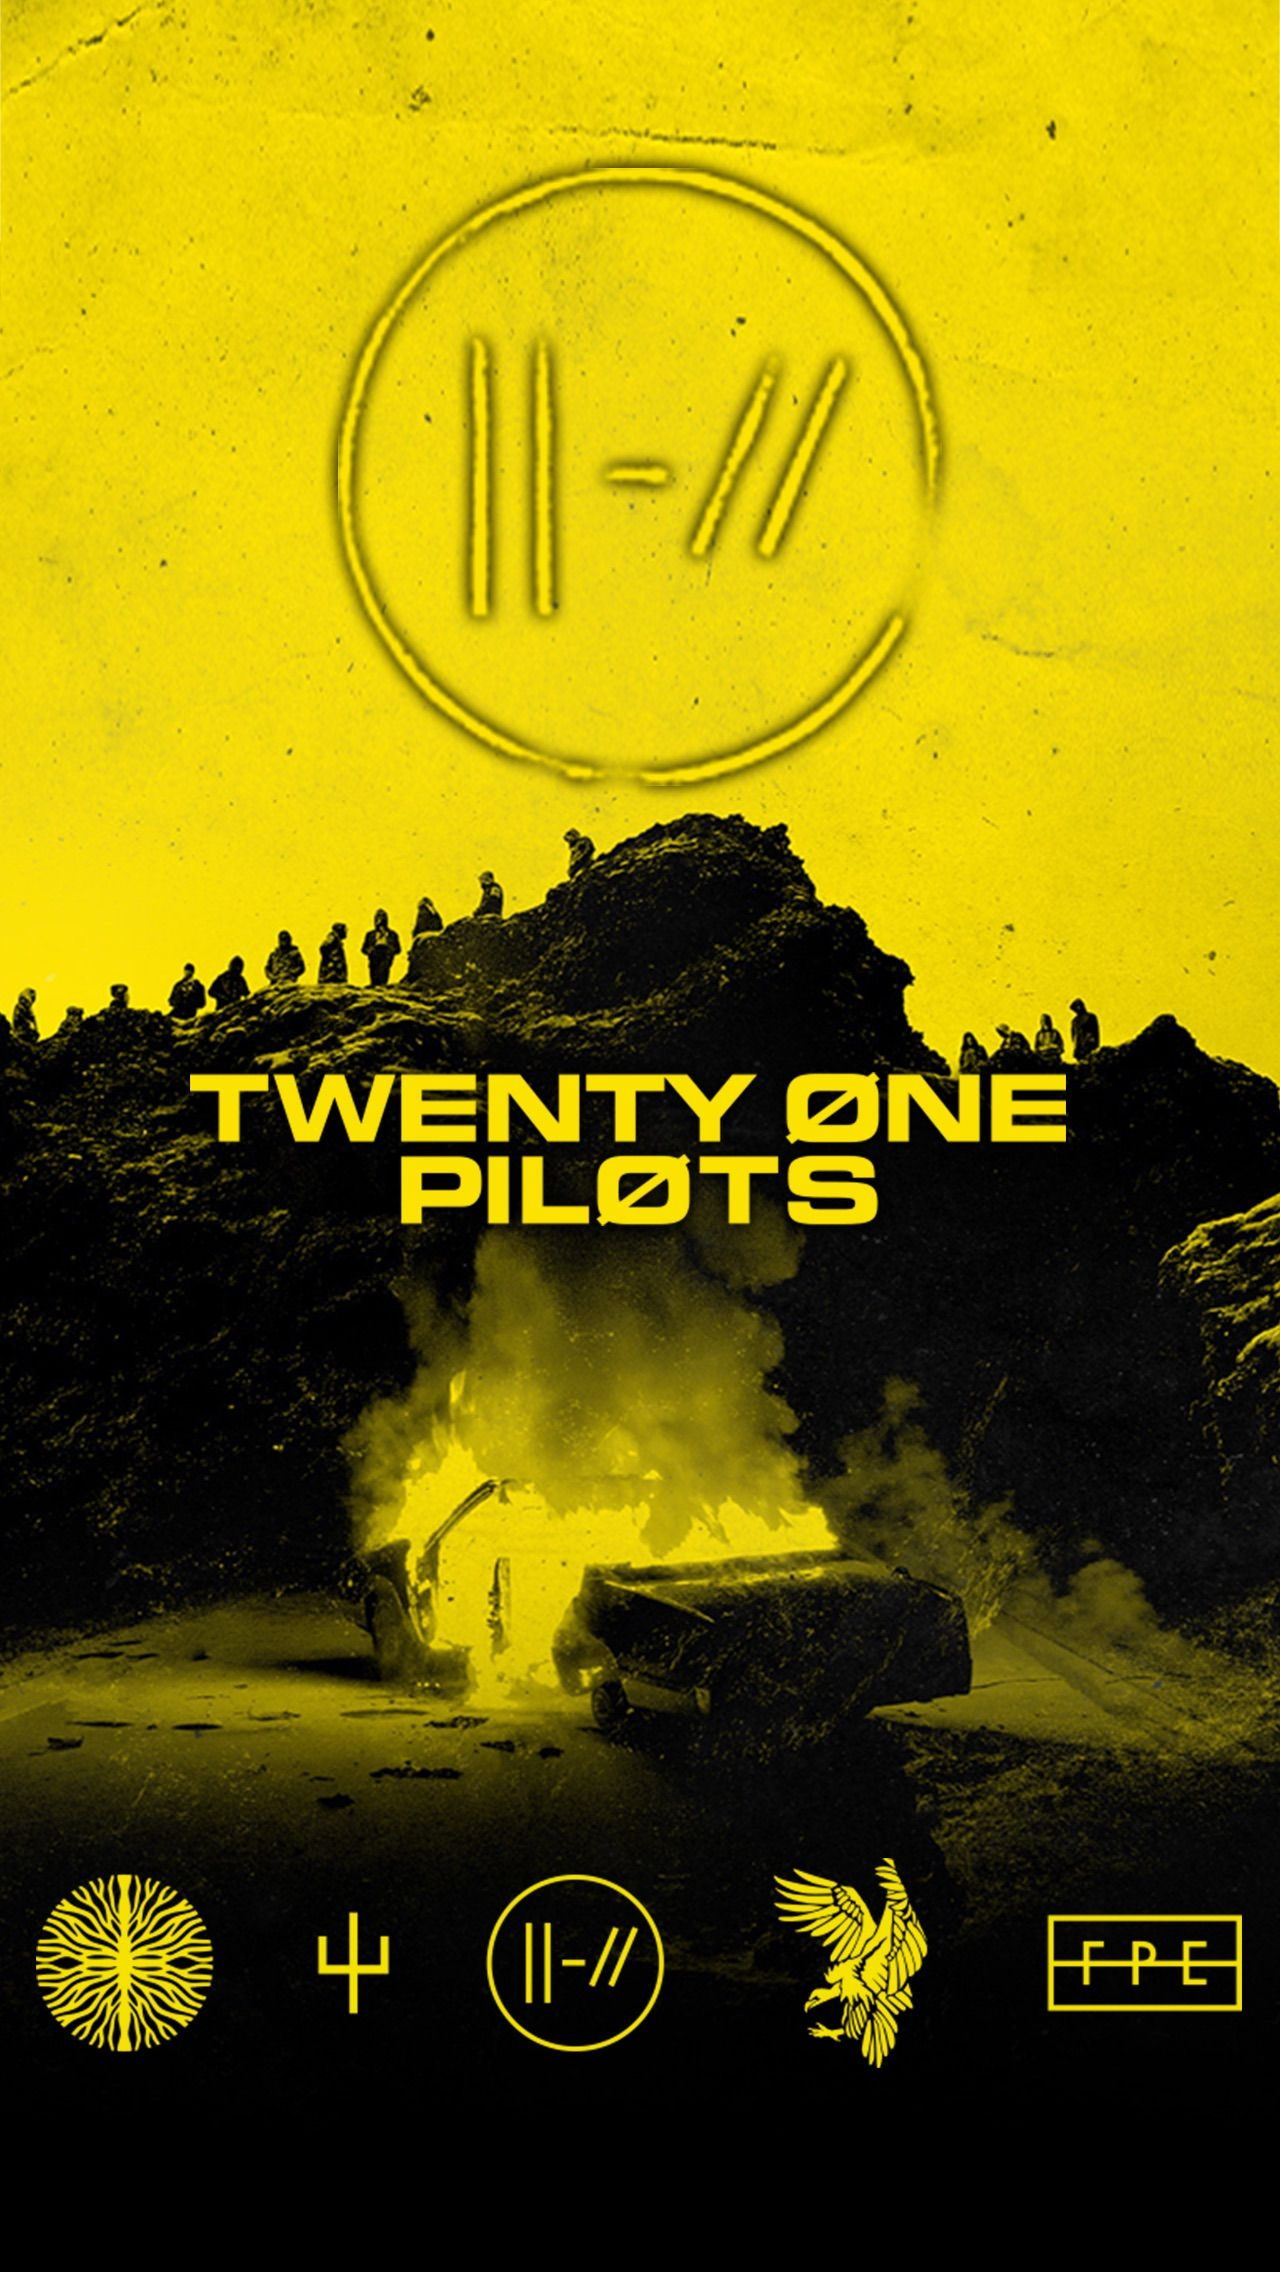 Trench iPhone wallpaper Twenty One Pilots Wallpaper, Band Wallpapers, Tyler Joseph, The Twenties